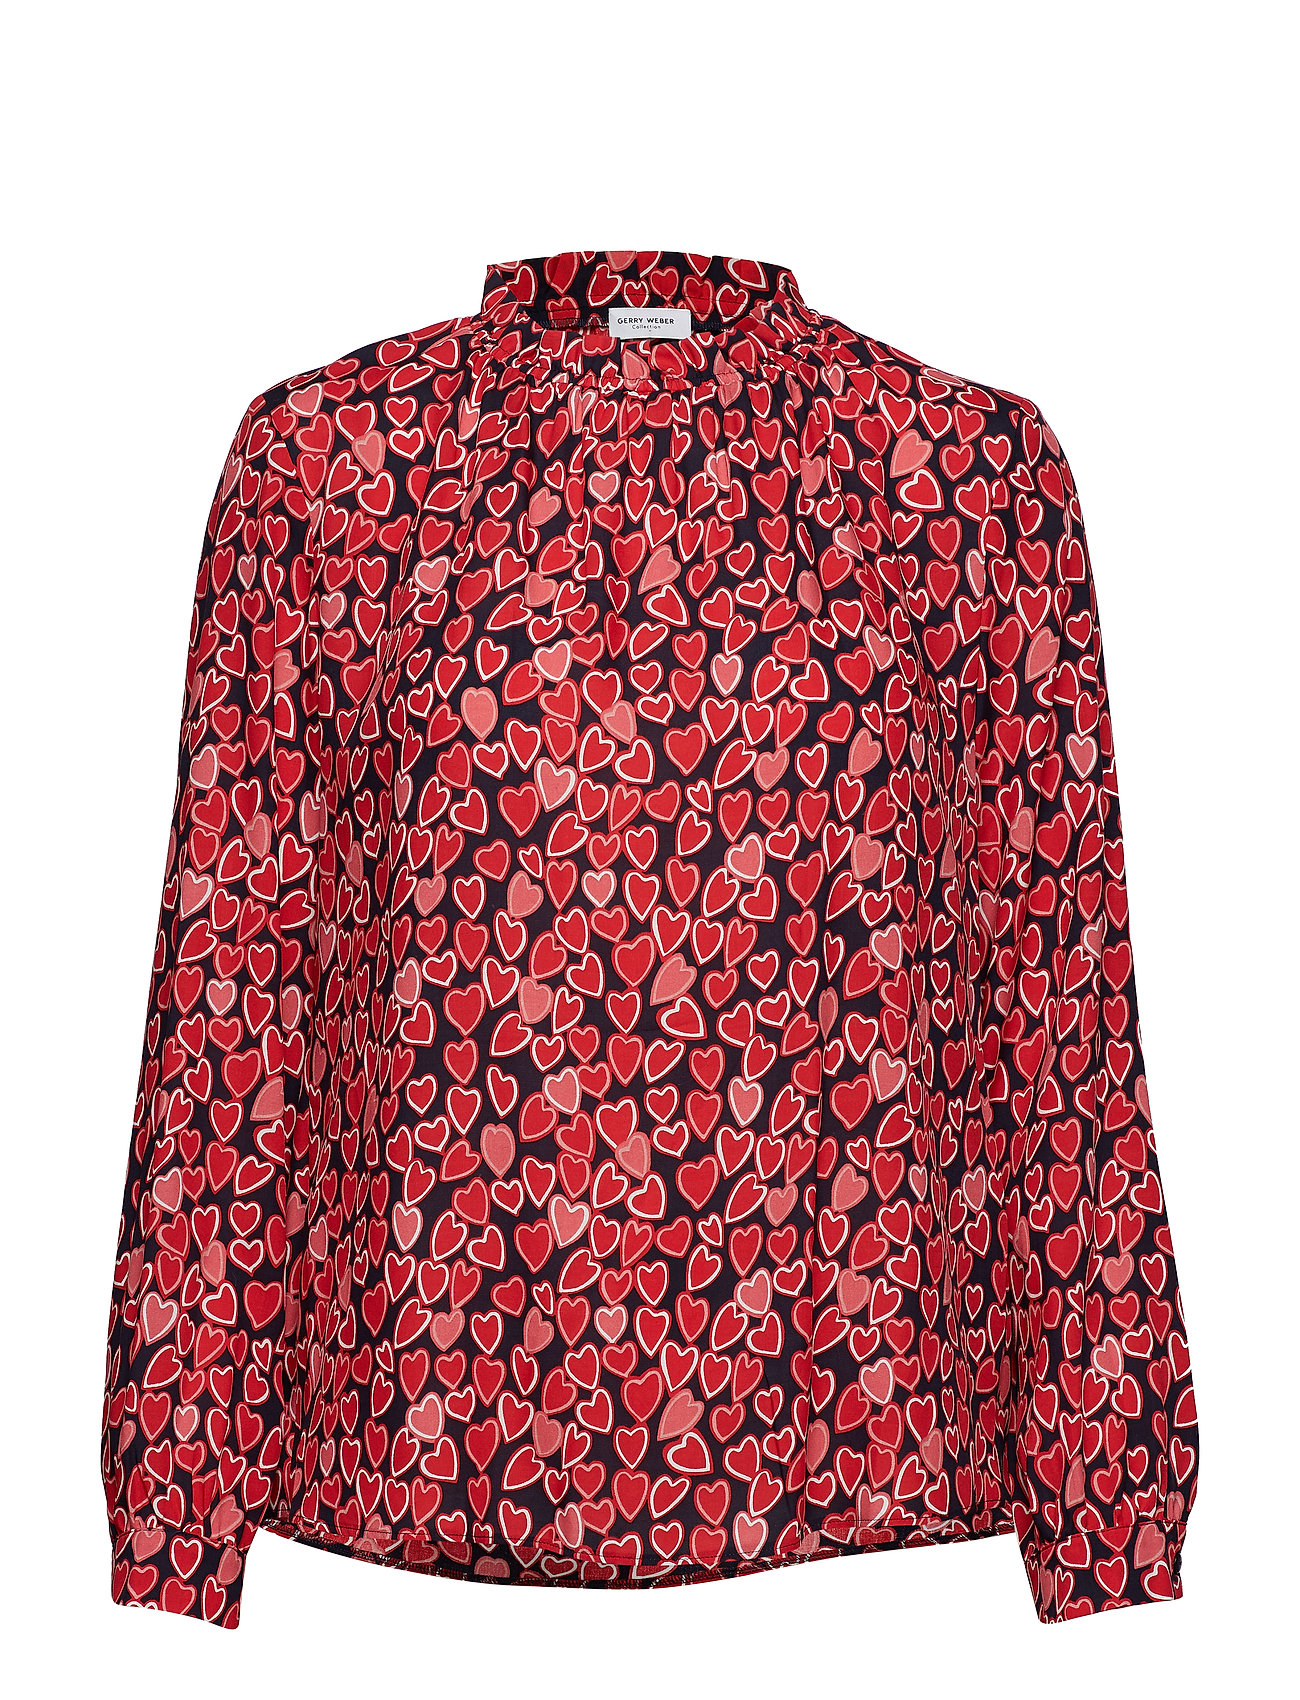 Gerry Weber BLOUSE LONG-SLEEVE - BLUE/RED/ORANGE PRINT